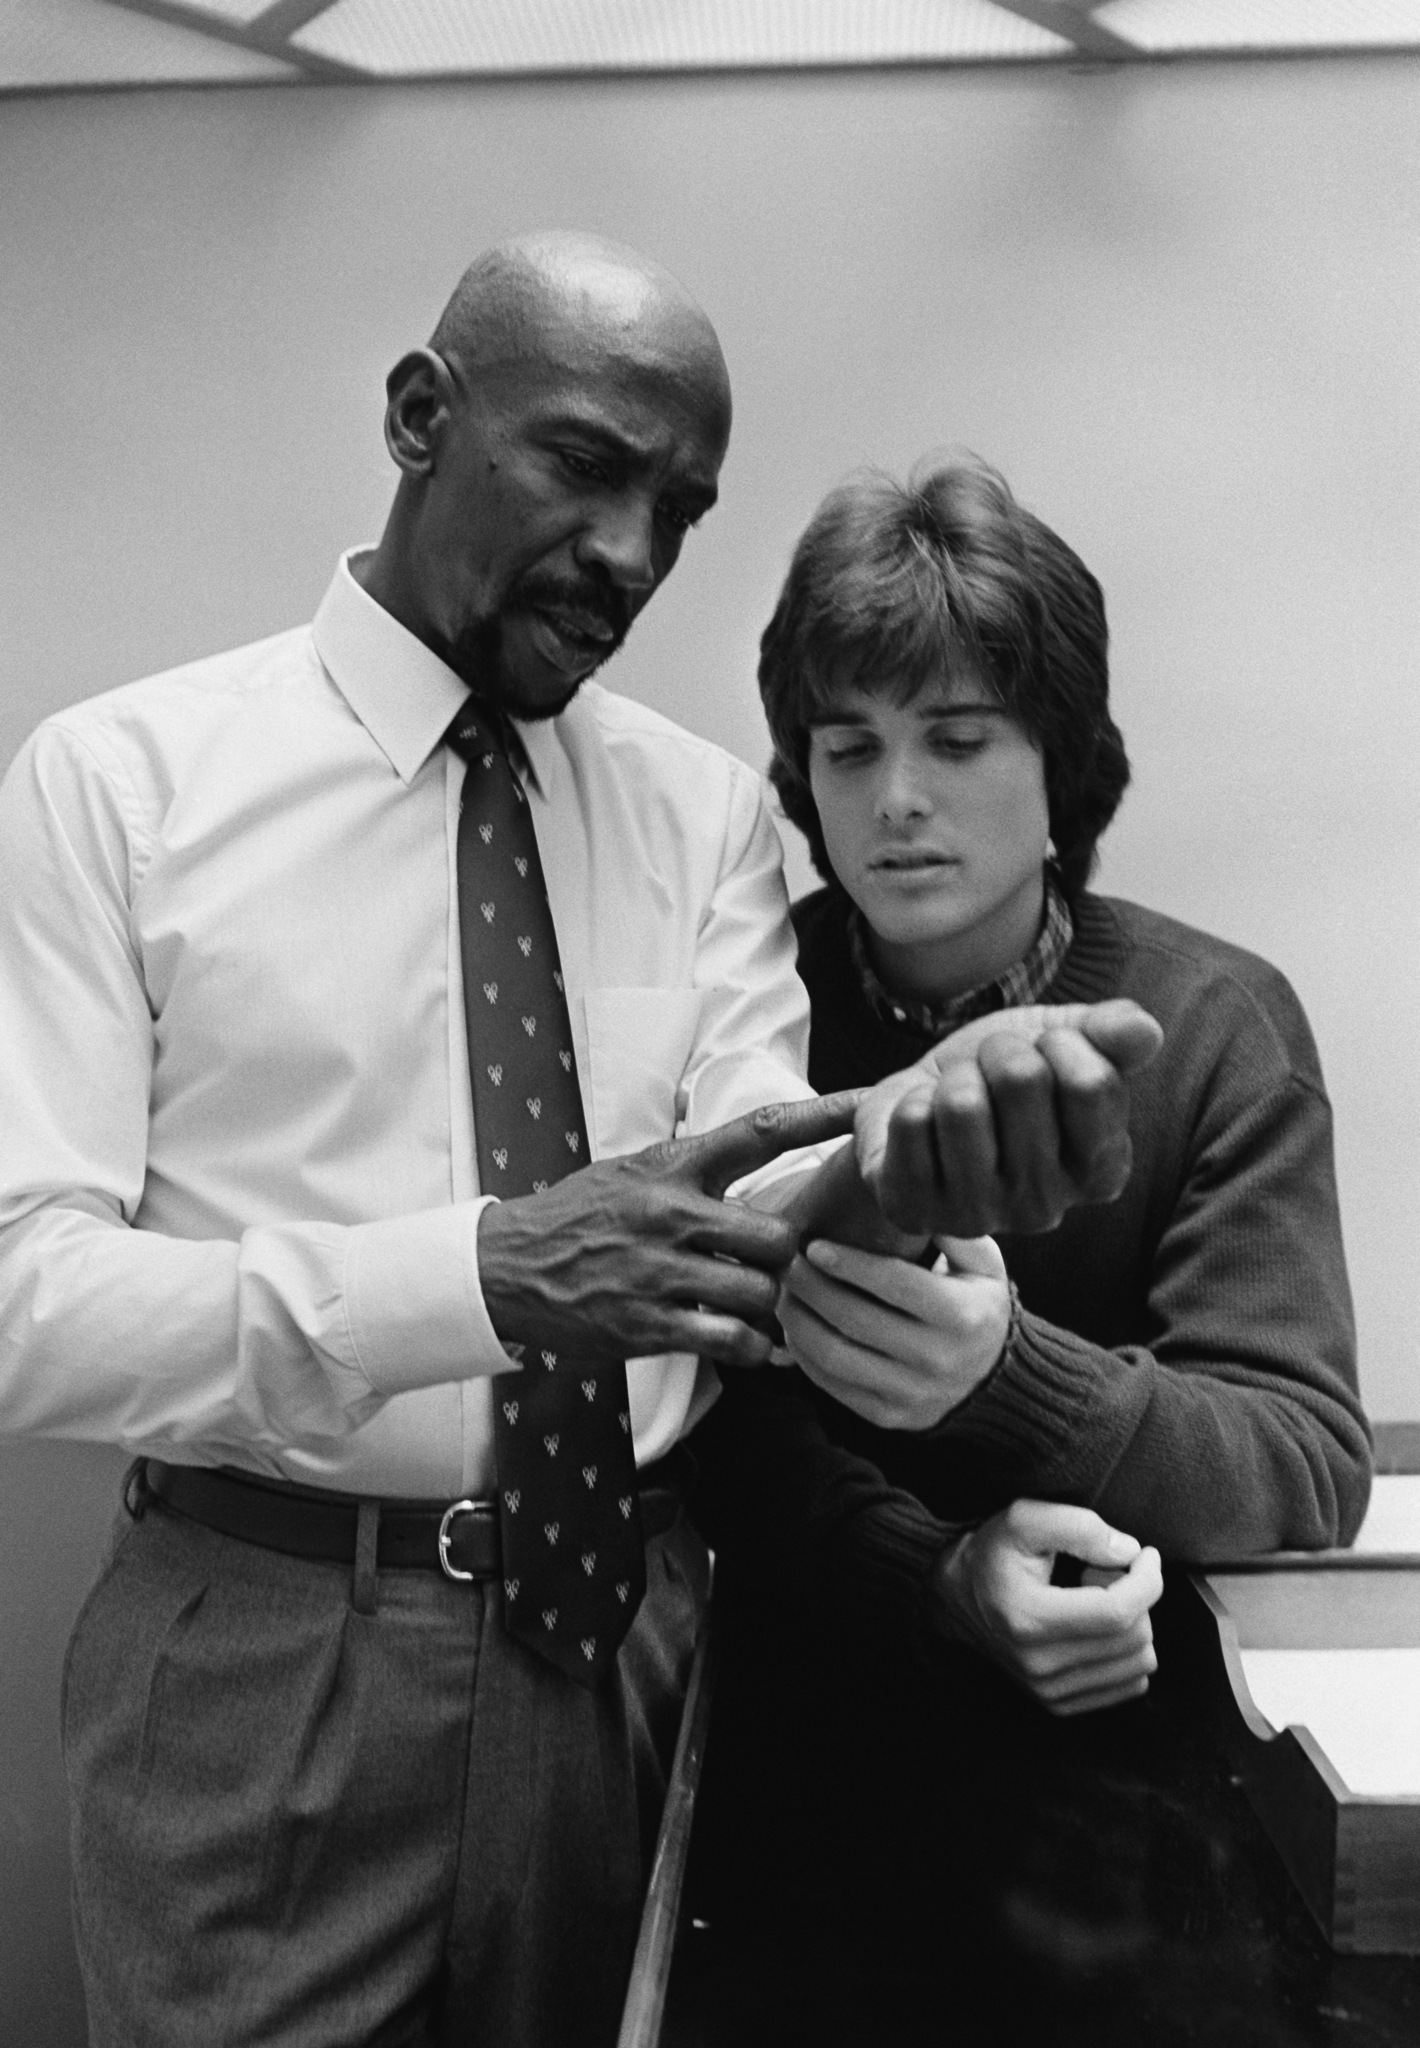 Louis Gossett Jr. and Peter Barton in The Powers of Matthew Star (1982)